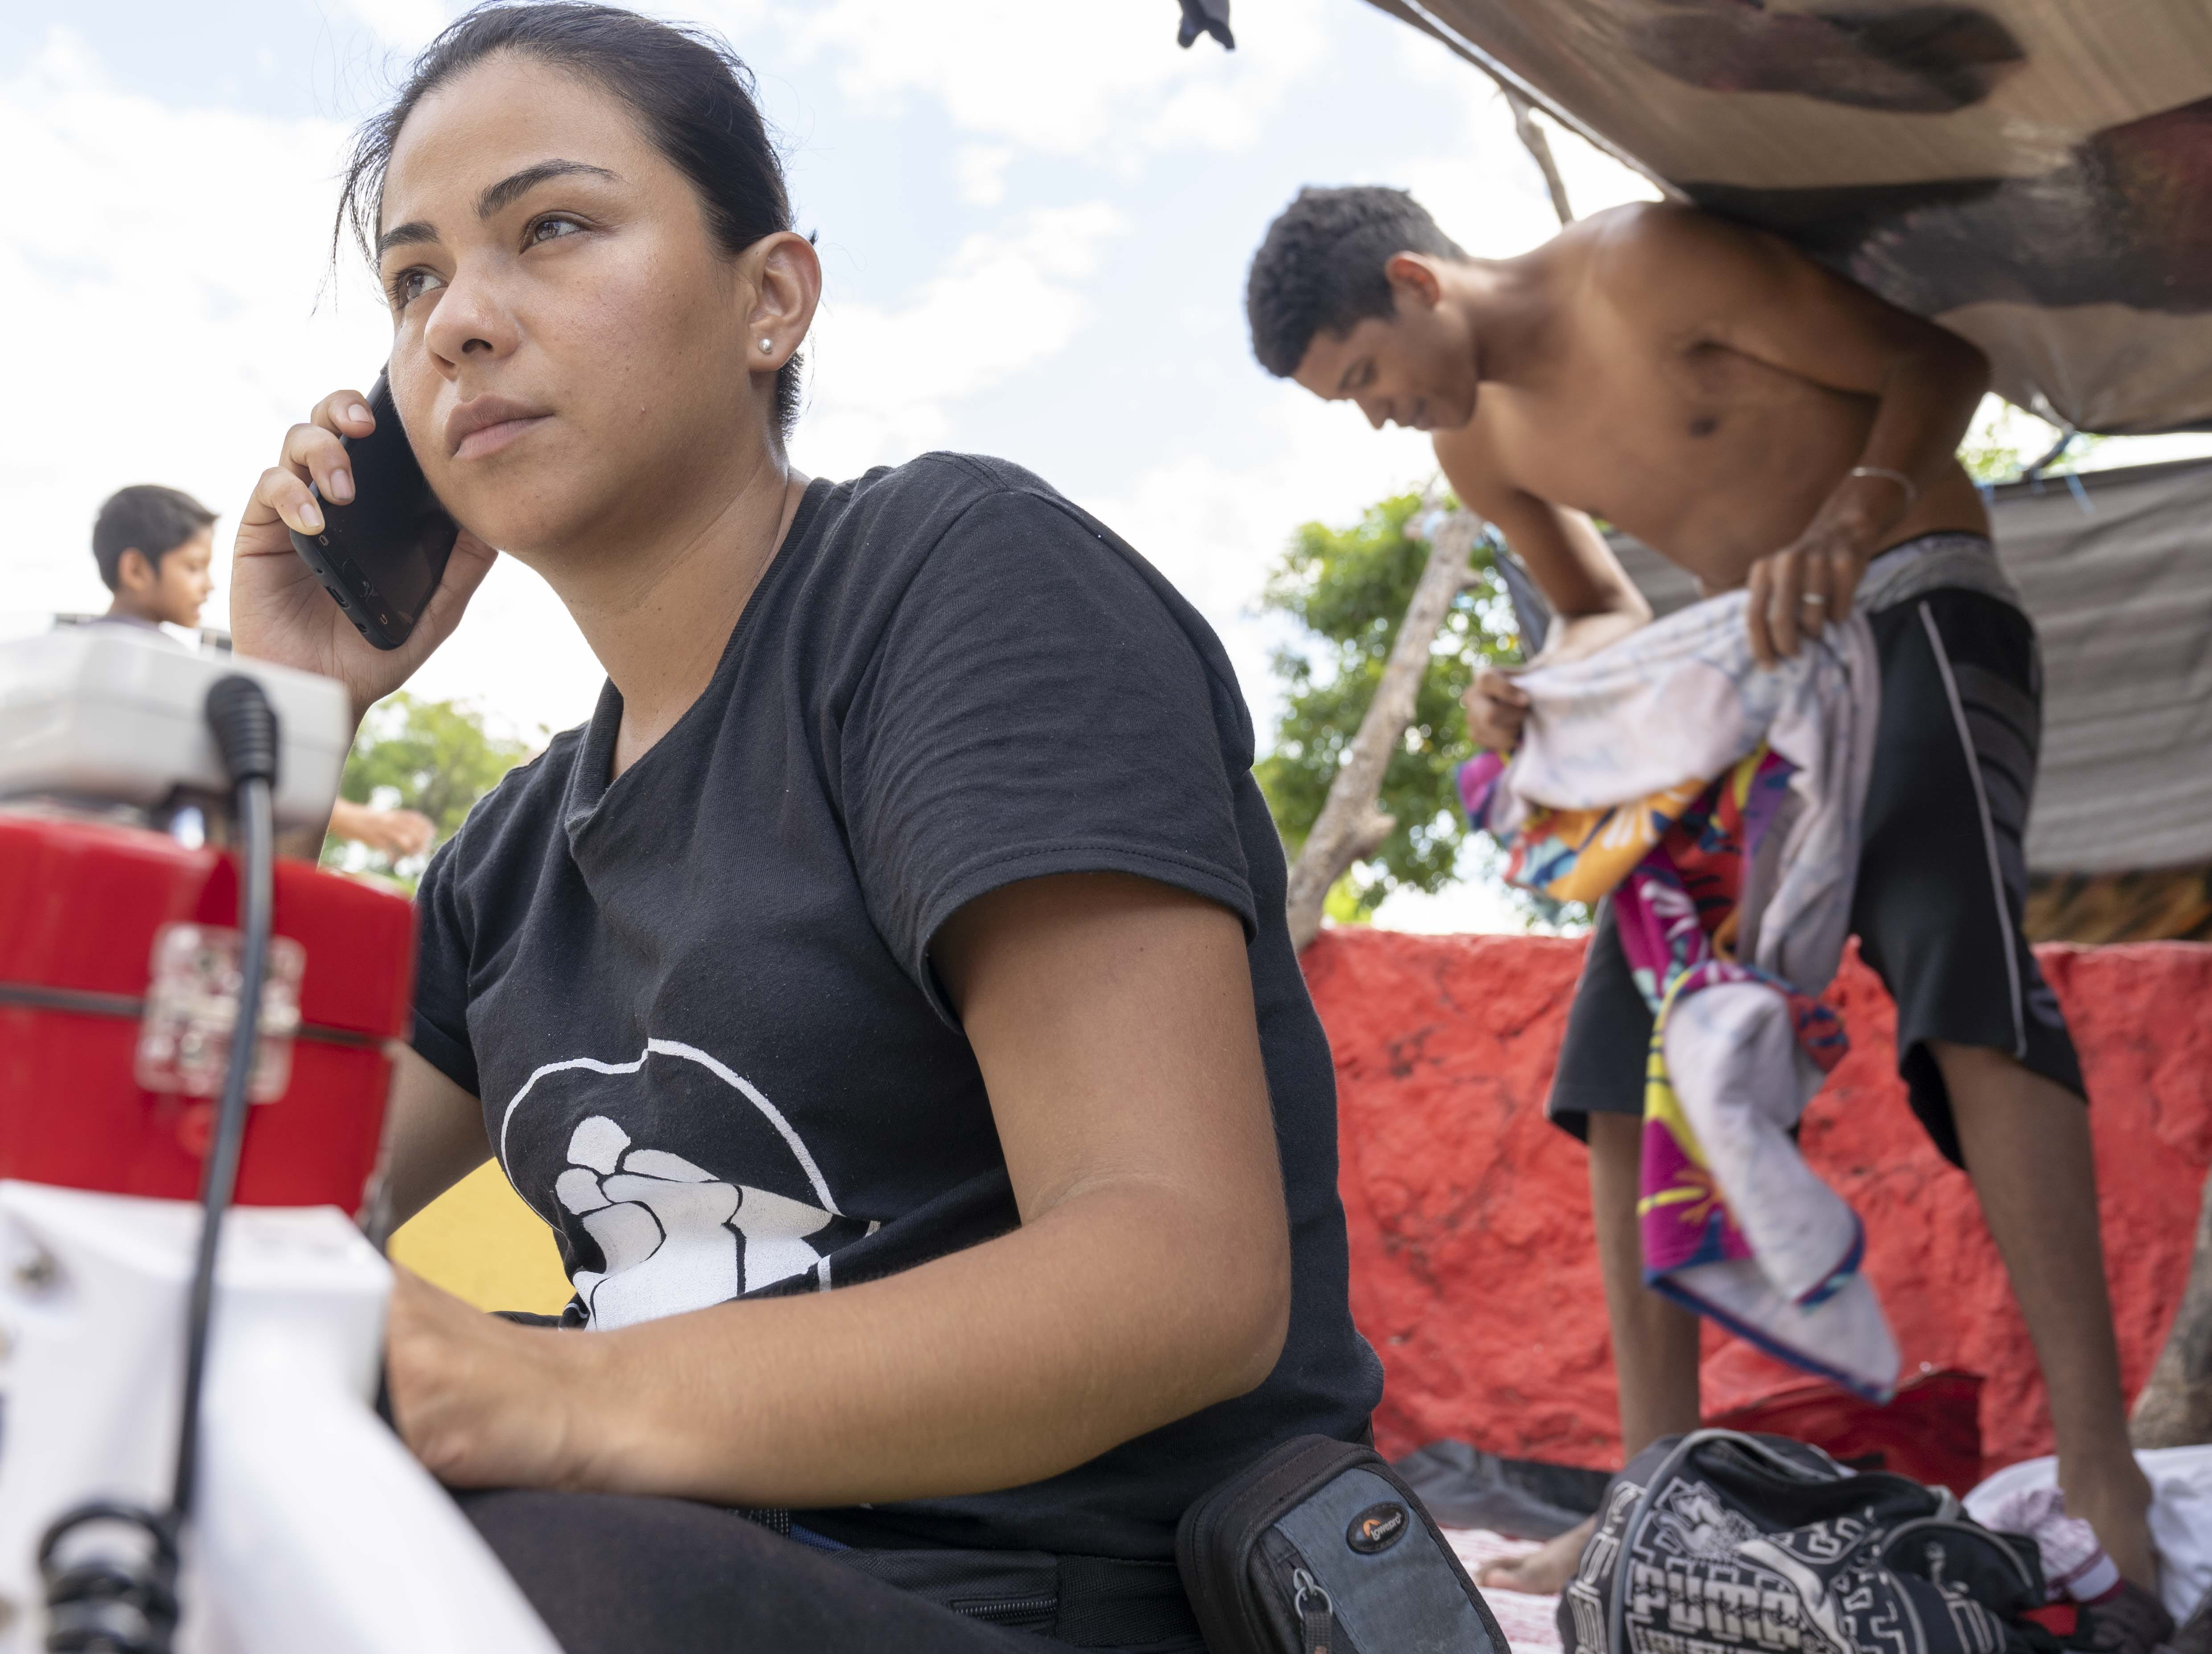 Gina Garibo, one of the organizer of the Migrant Caravan working on details for tomorow's journey. The thousands of migrants from Honduras and other Central American countries traveling in a huge caravan toward the U.S. took a day off to rest on Sunday, Oct. 28, 2018.